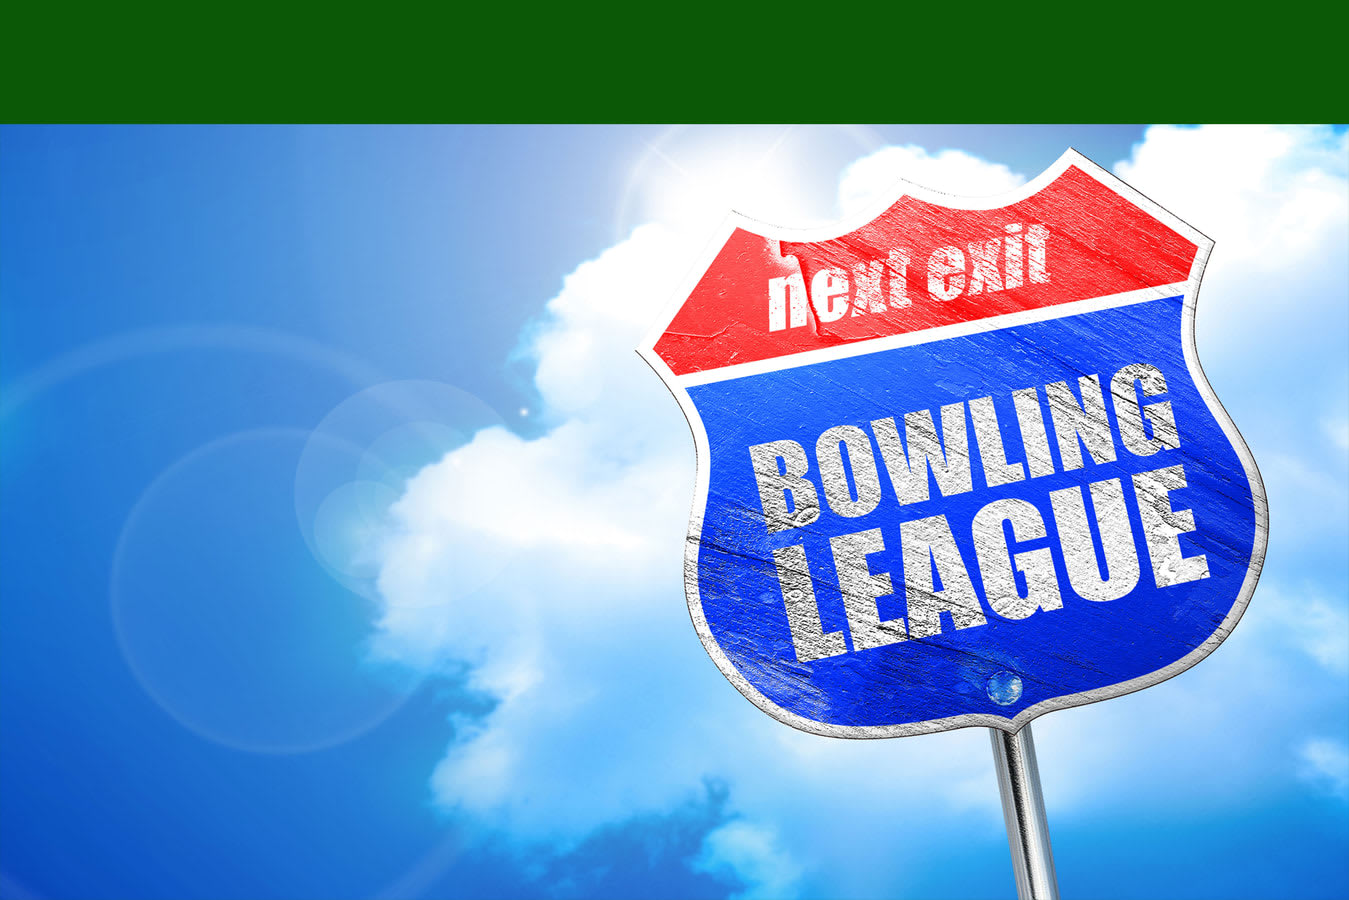 Next Exit Bowling Leagues